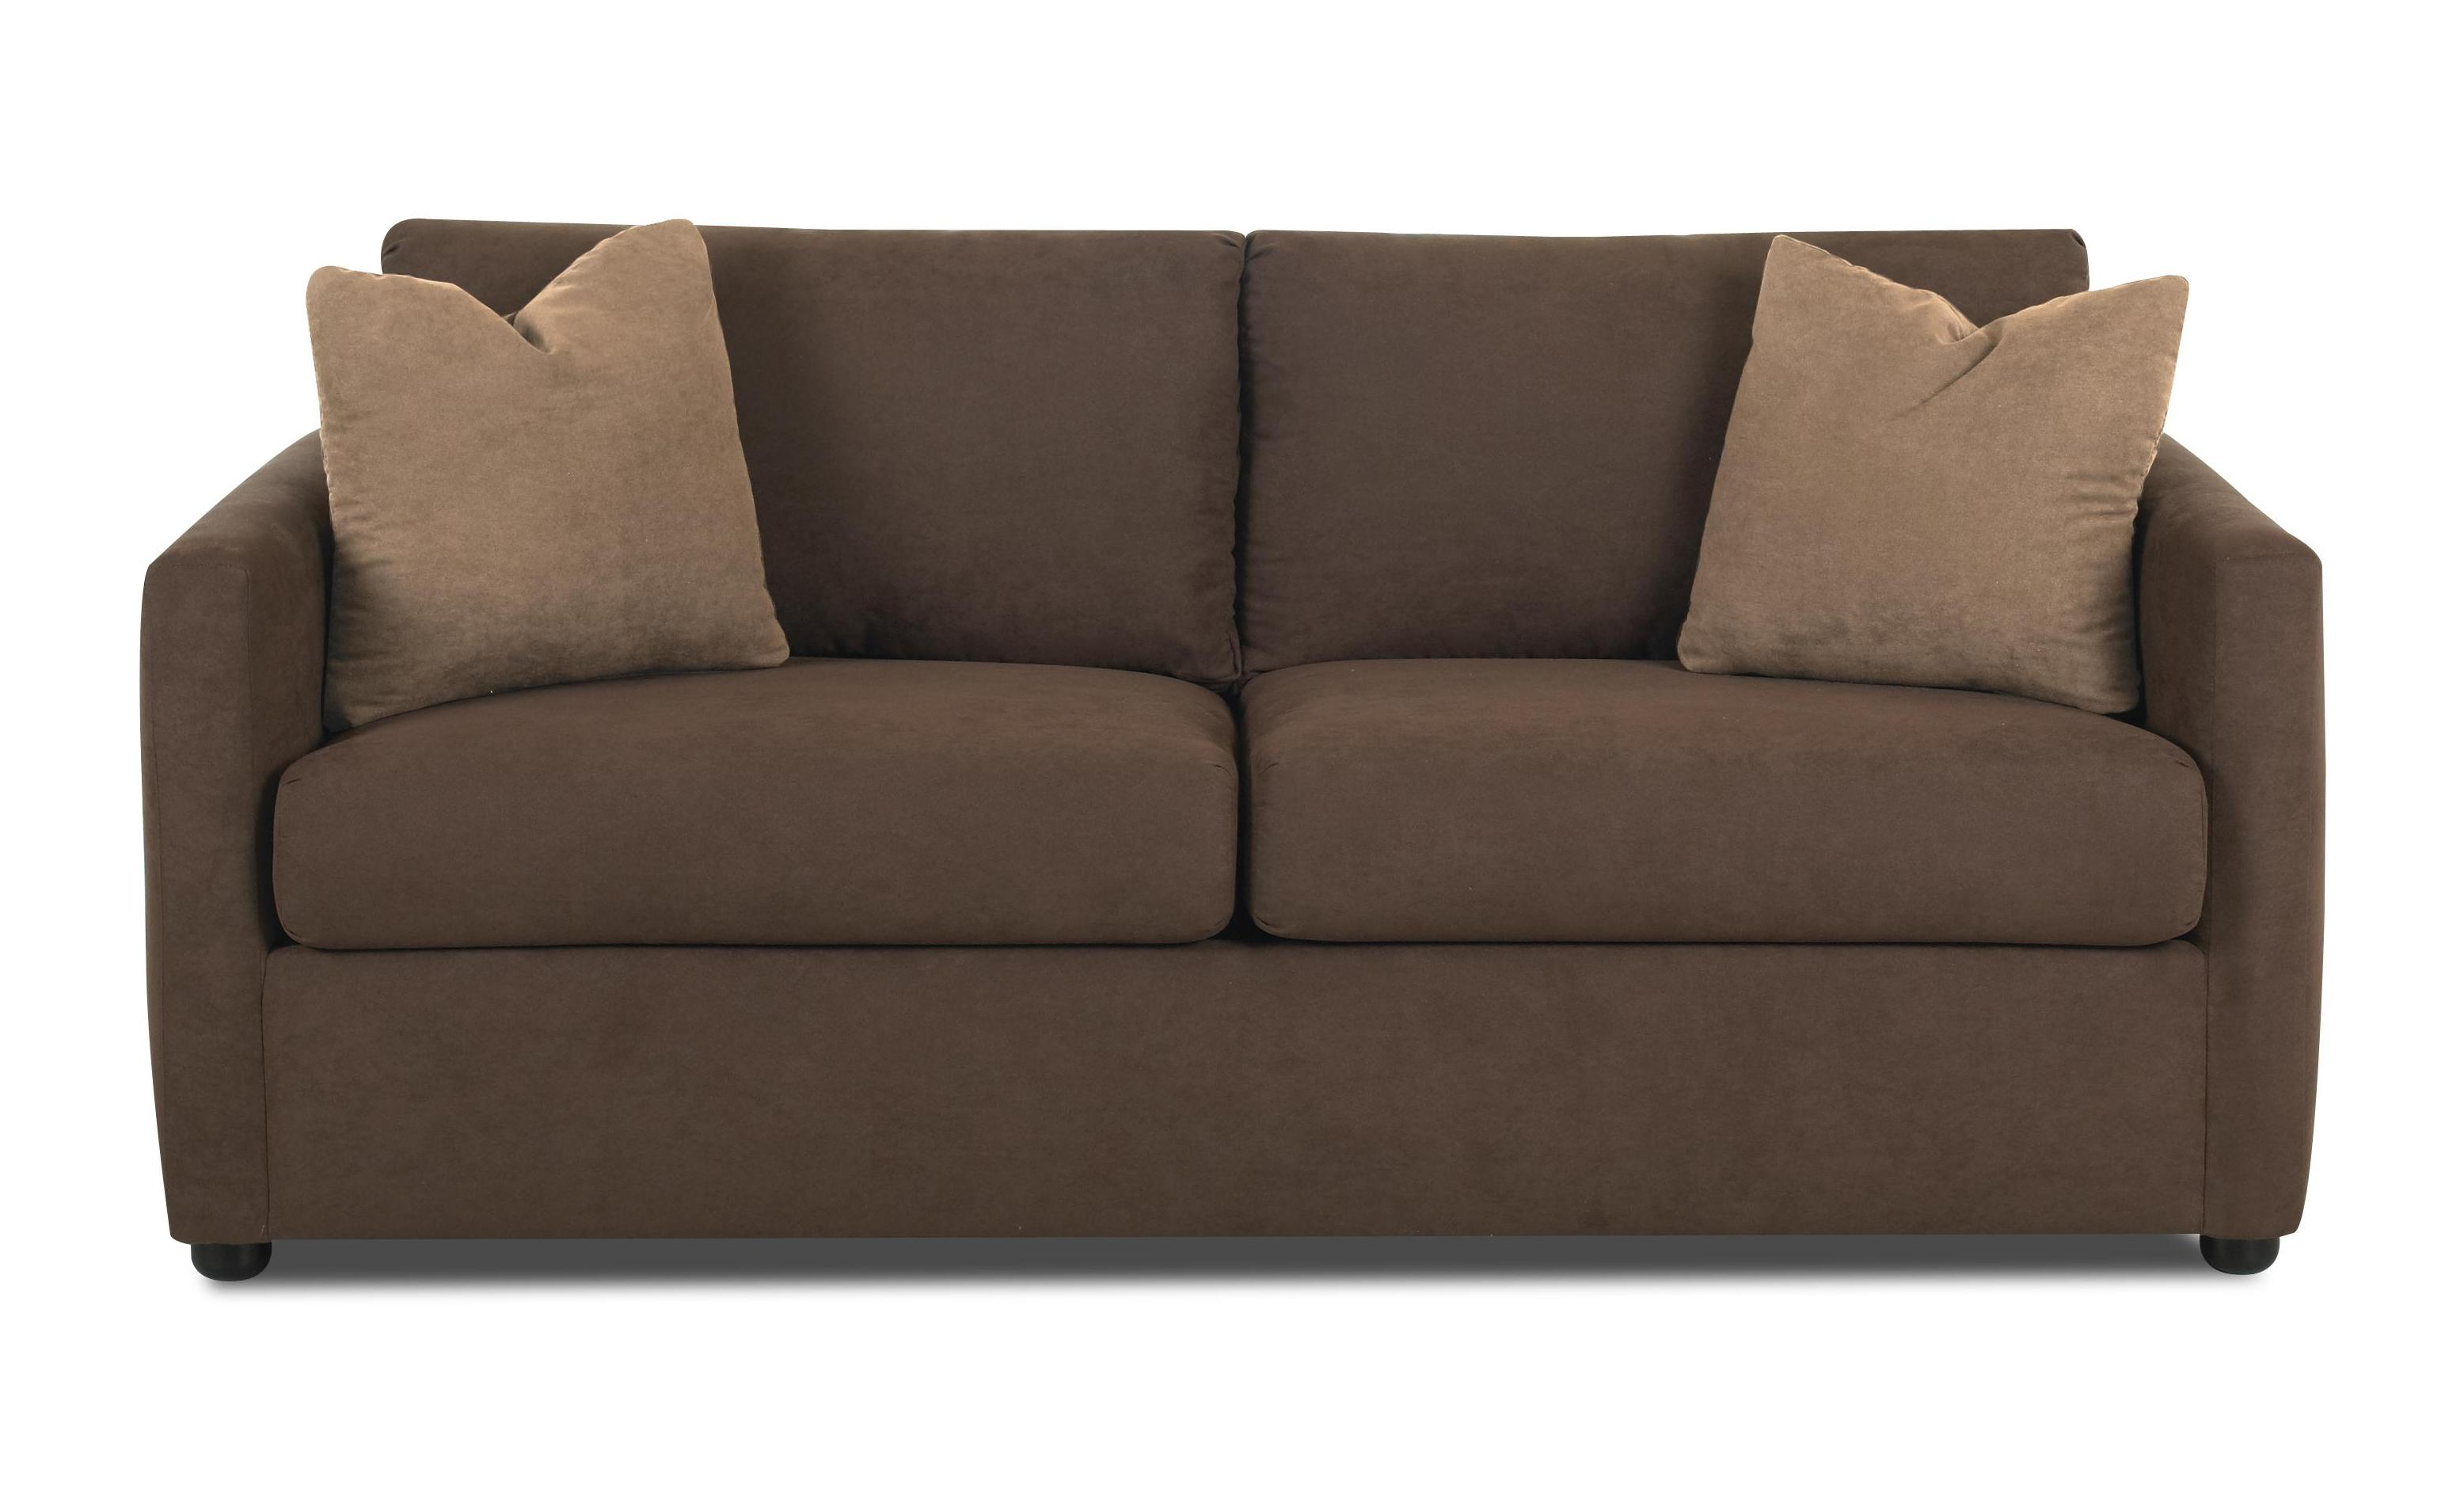 Jacobs Casual Queen Sleeper Sofa By Klaussner